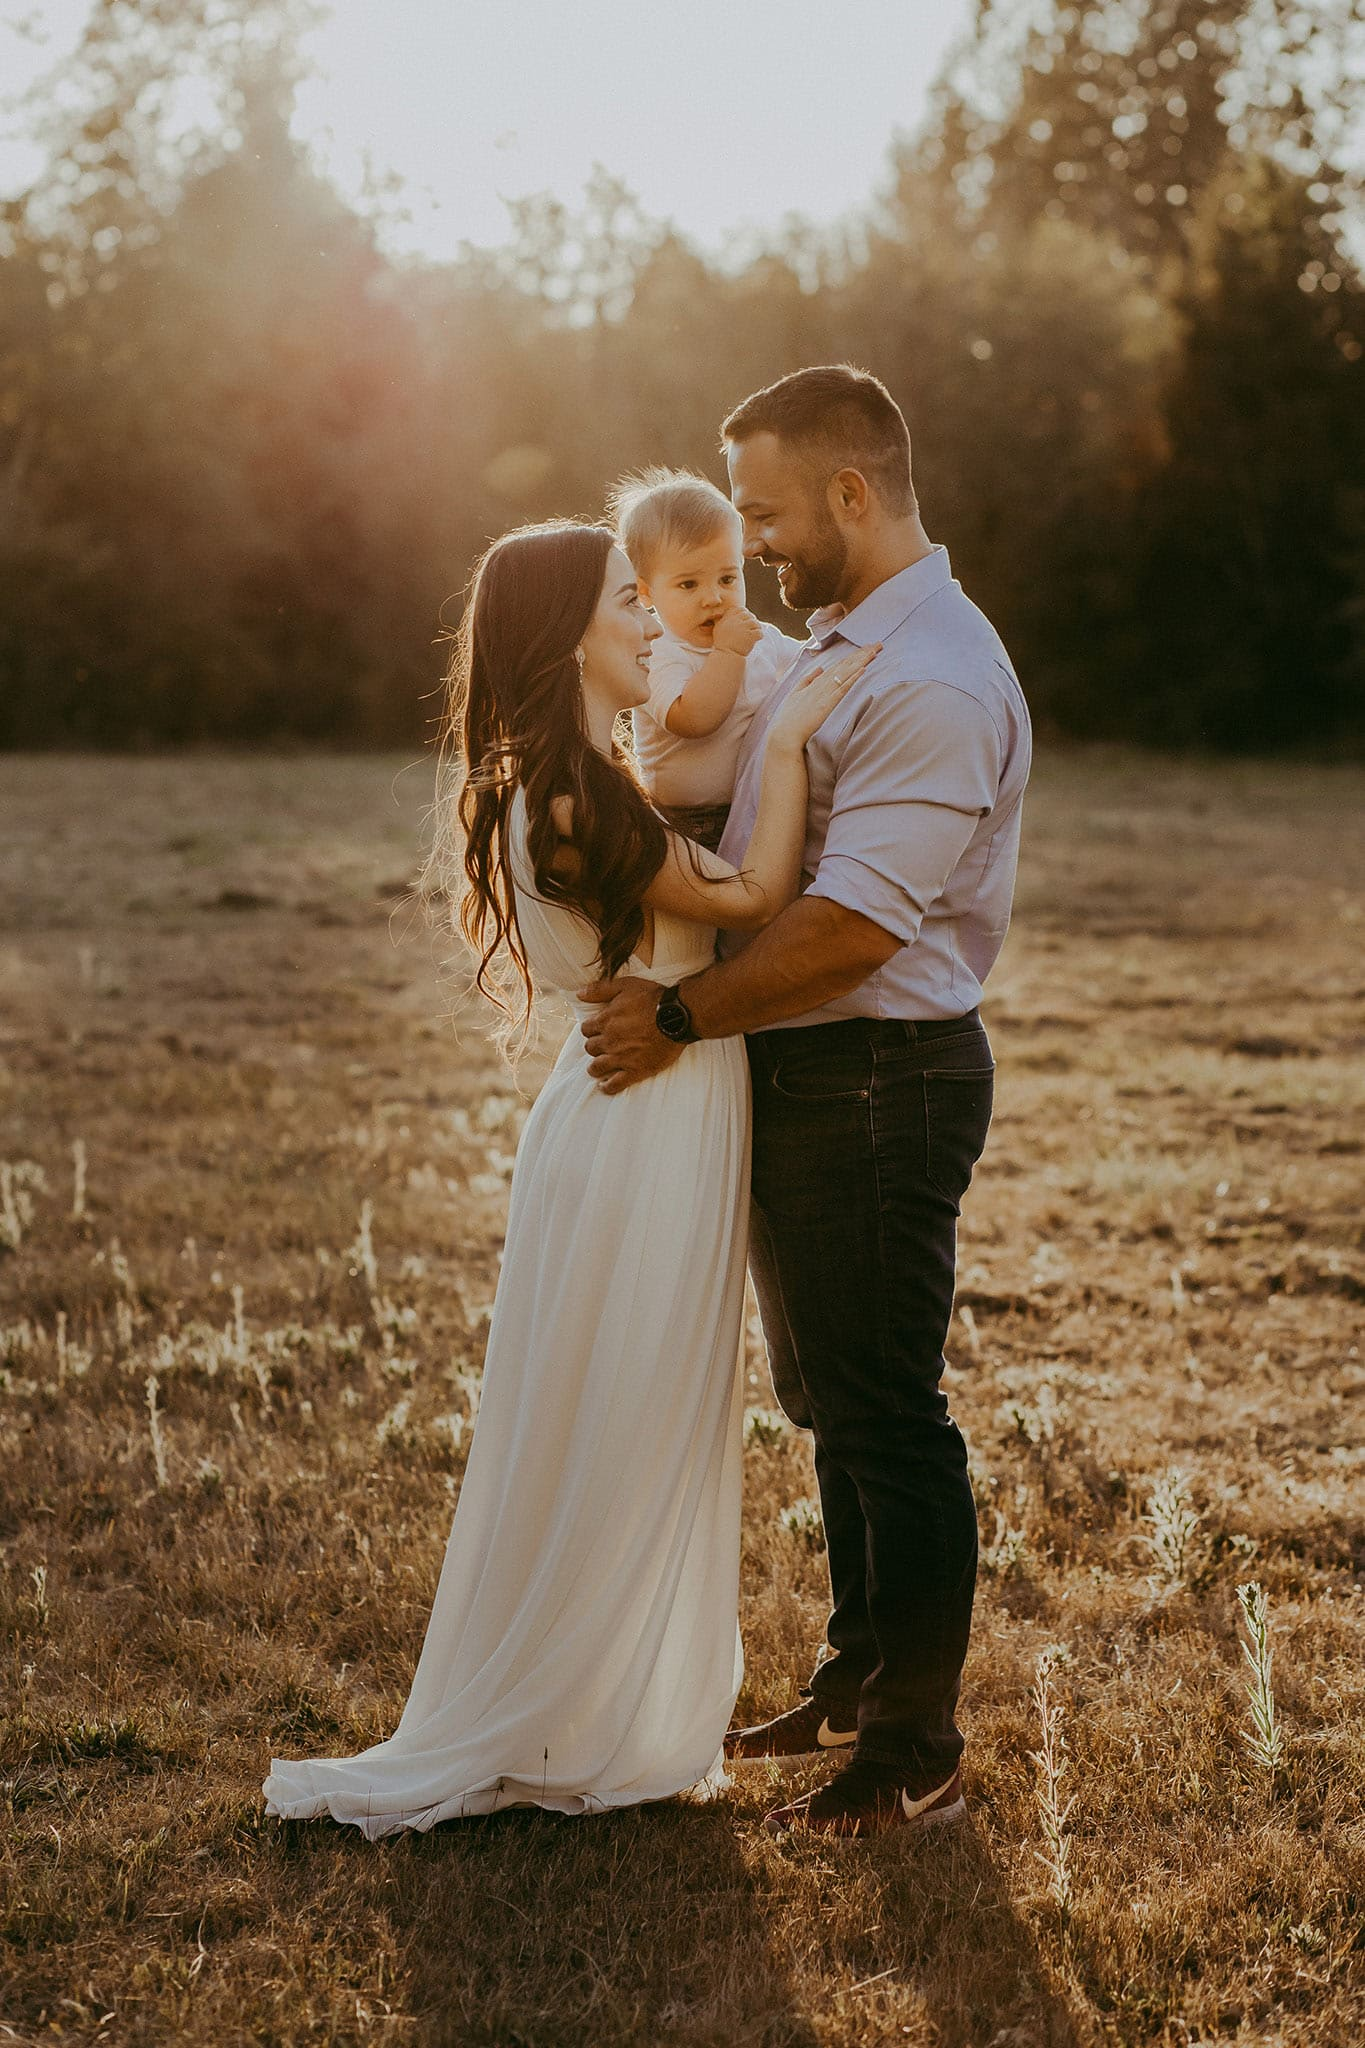 photos in the summer season - family of three embracing with the sun behind them